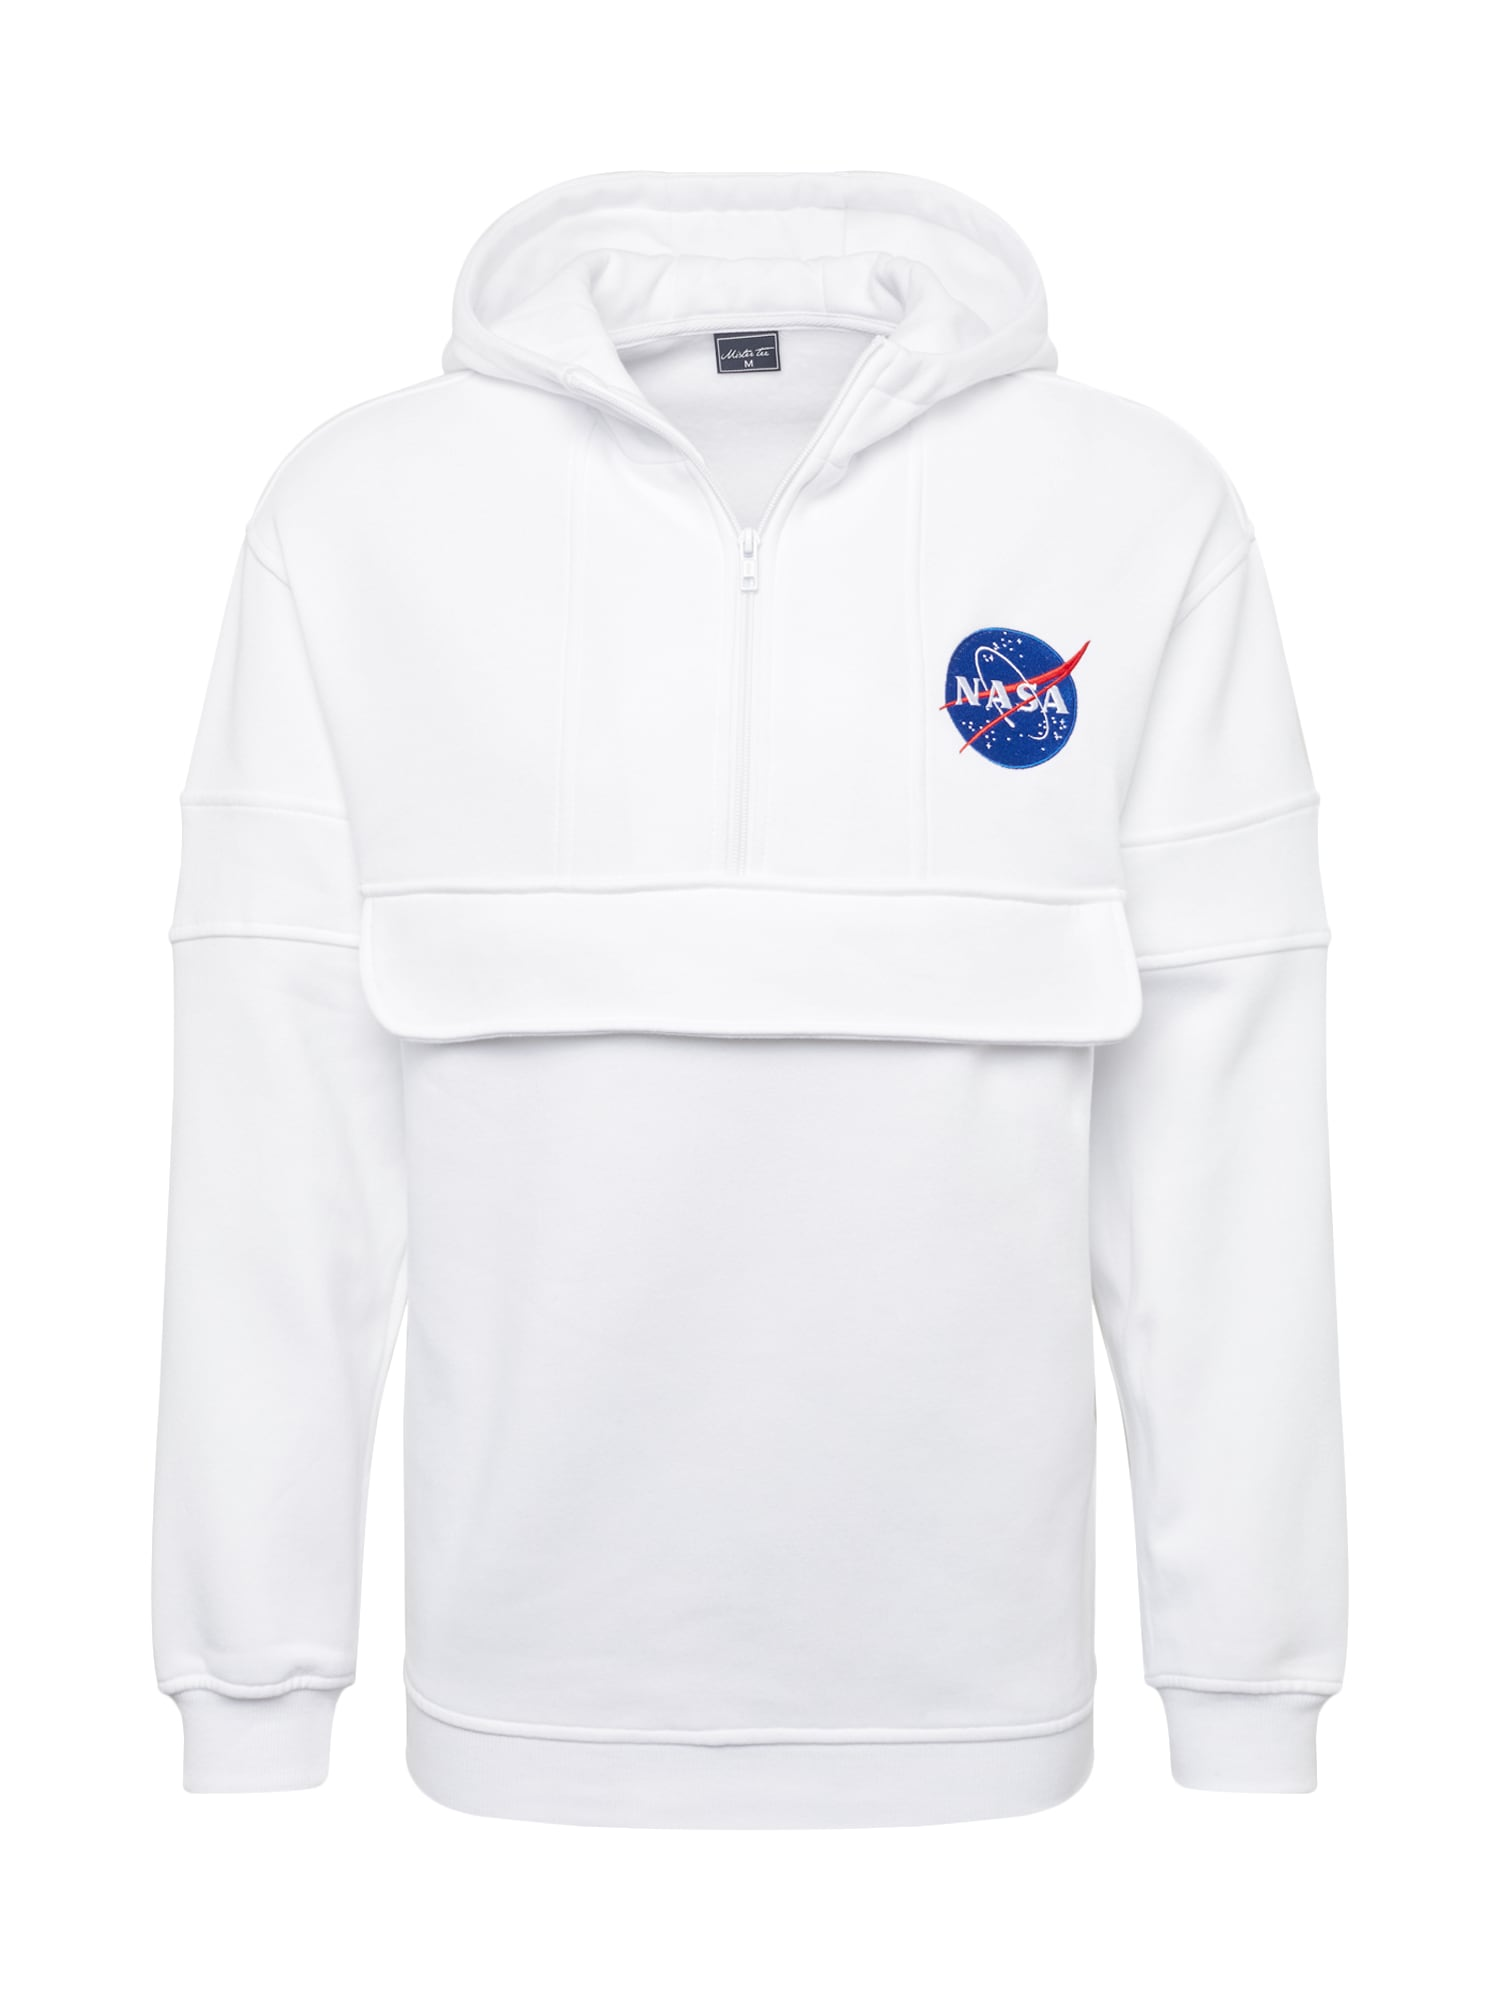 Mister Tee Džemperis 'NASA Chest Embroidery Pull Over Hoody' balta